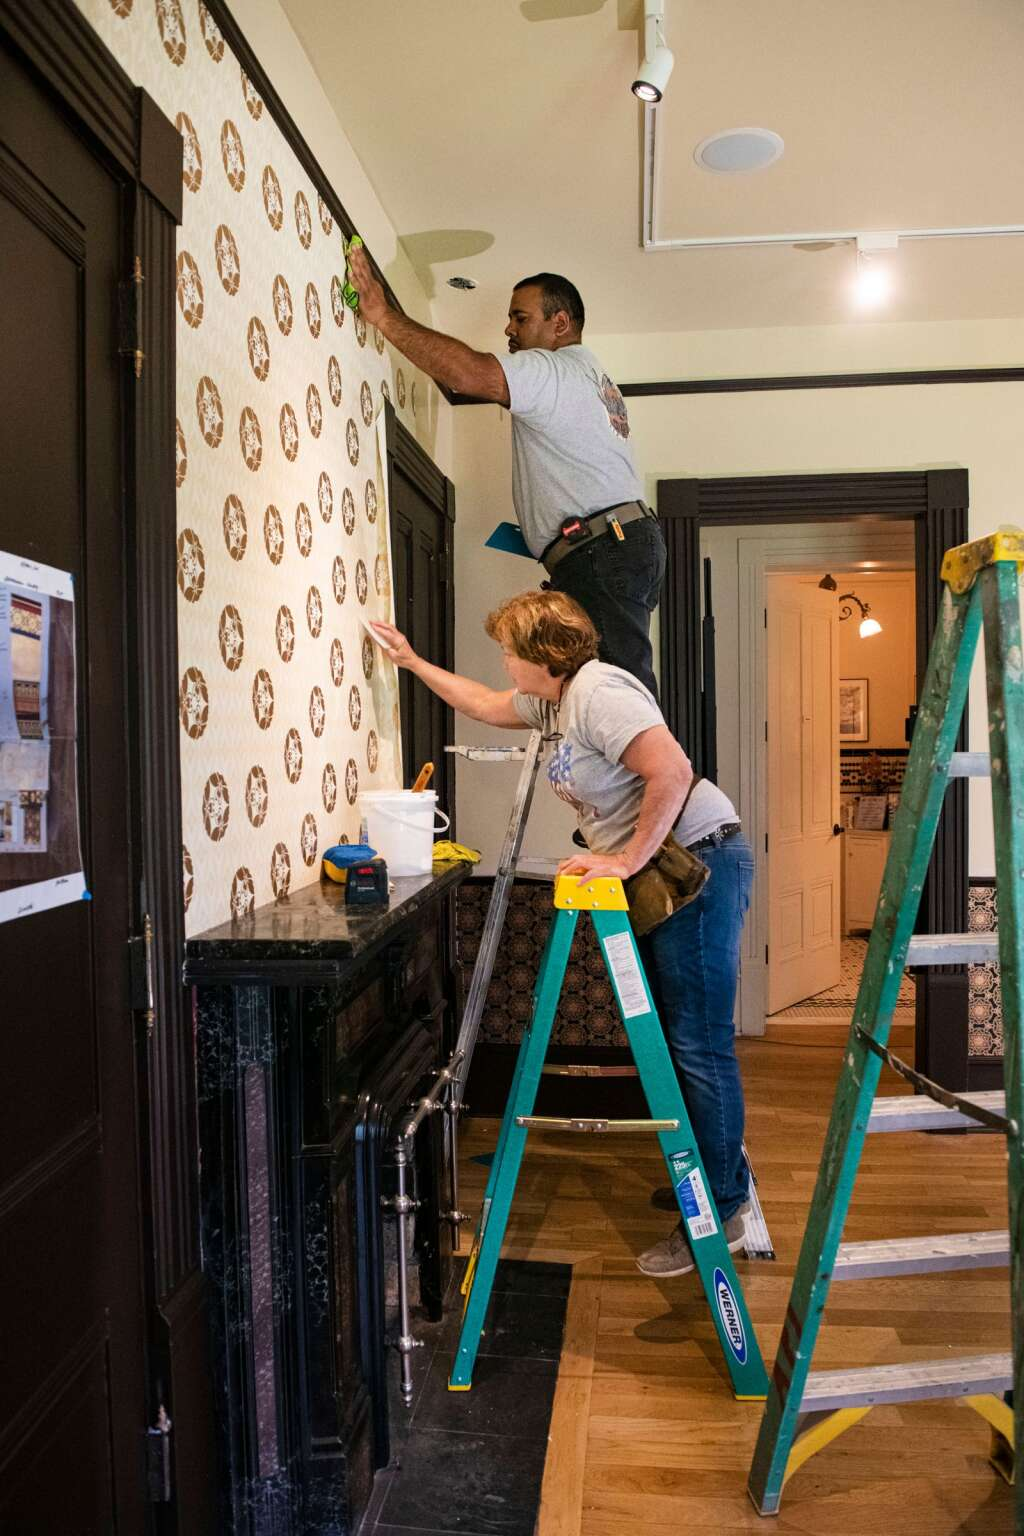 Dizan Quezada and Janie Zelenka apply wallpaper to the walls of a room in the Aspen Historical Society's victorian Wheeler-Stallard Museum on W. Bleeker St. in Aspen on Wednesday, May 12, 2021. (Kelsey Brunner/The Aspen Times)